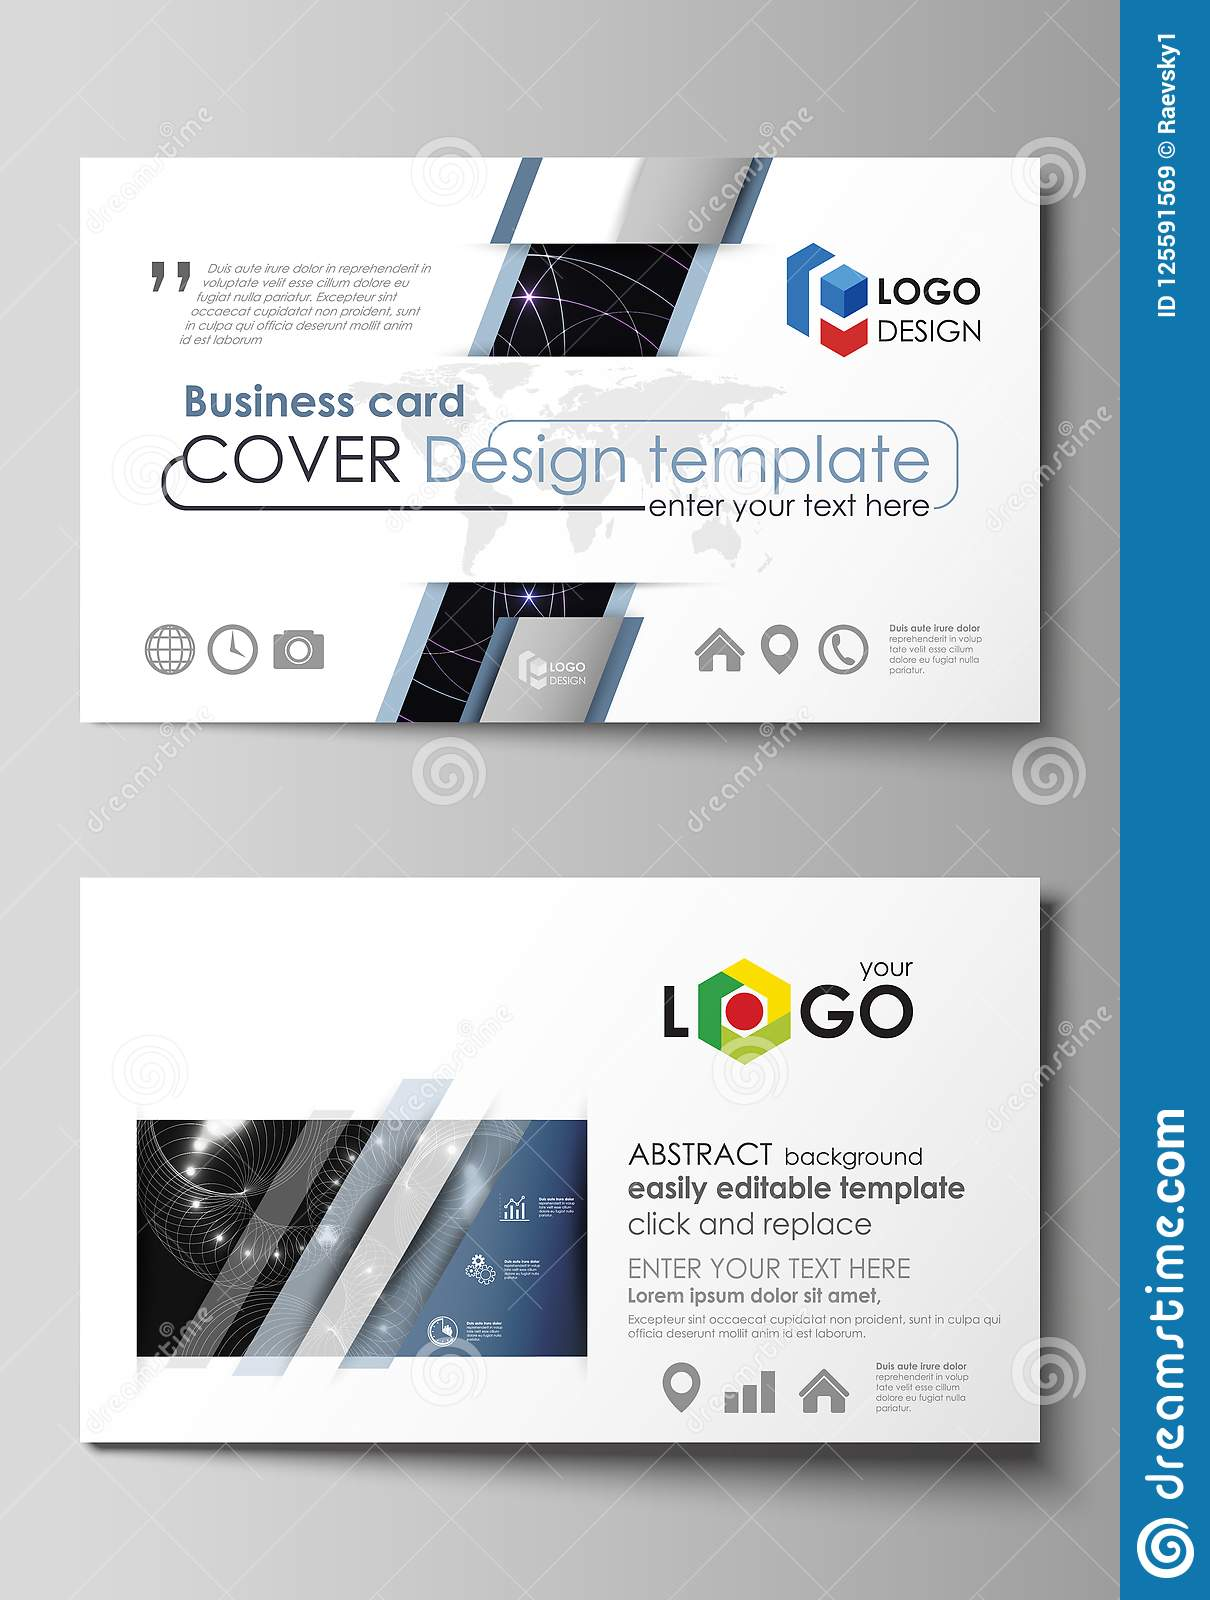 Business card templates easy editable layout abstract vector download business card templates easy editable layout abstract vector design template sacred geometry accmission Images